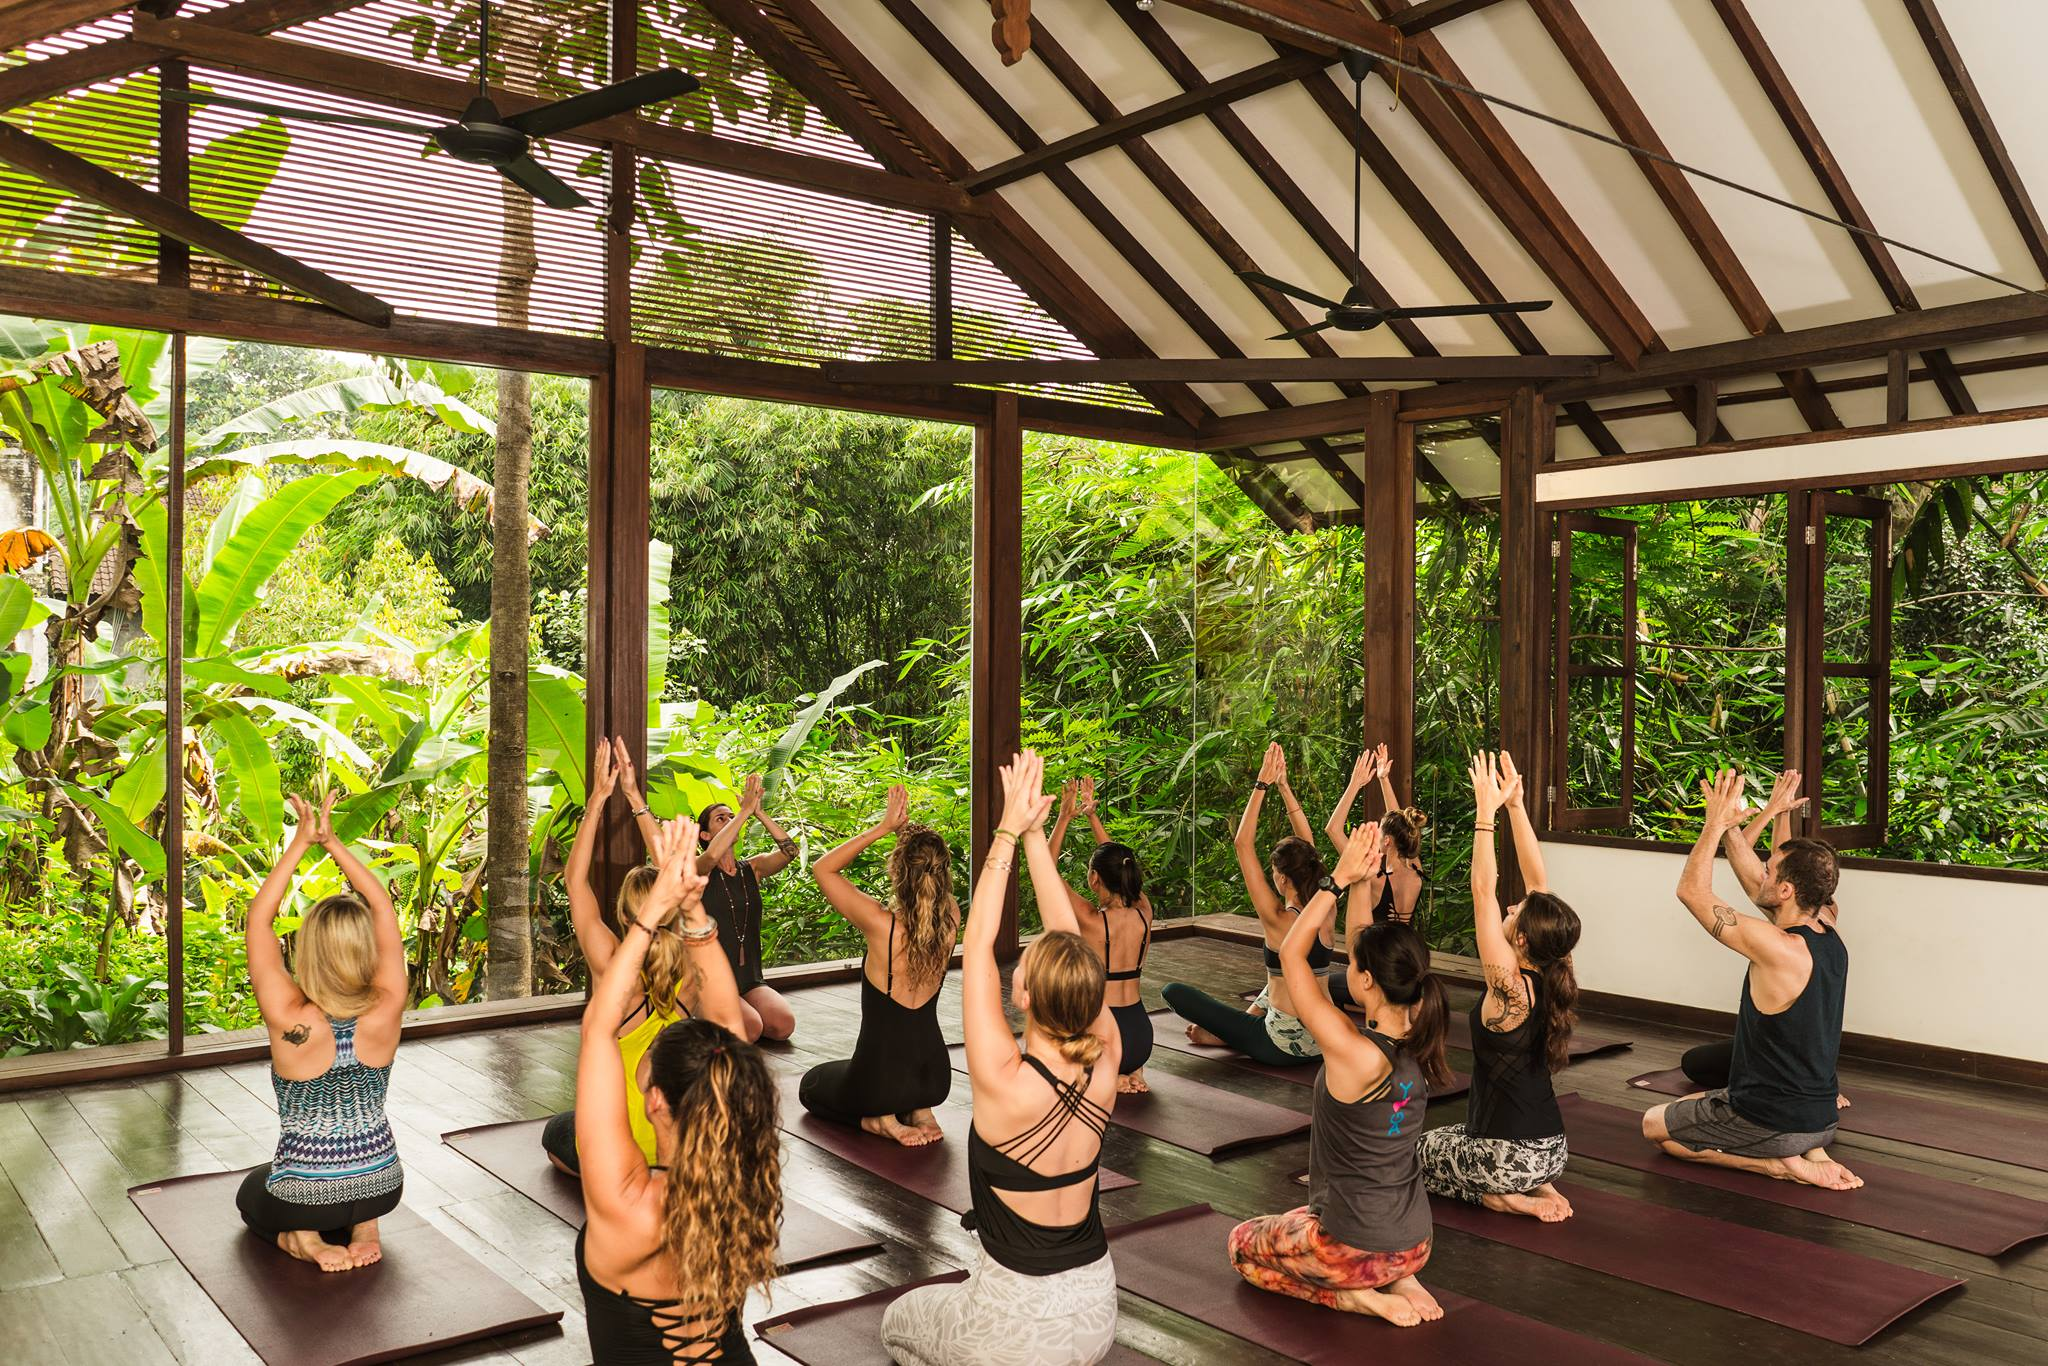 How To Find Your Internal Balance Best Yoga Spots In Bali